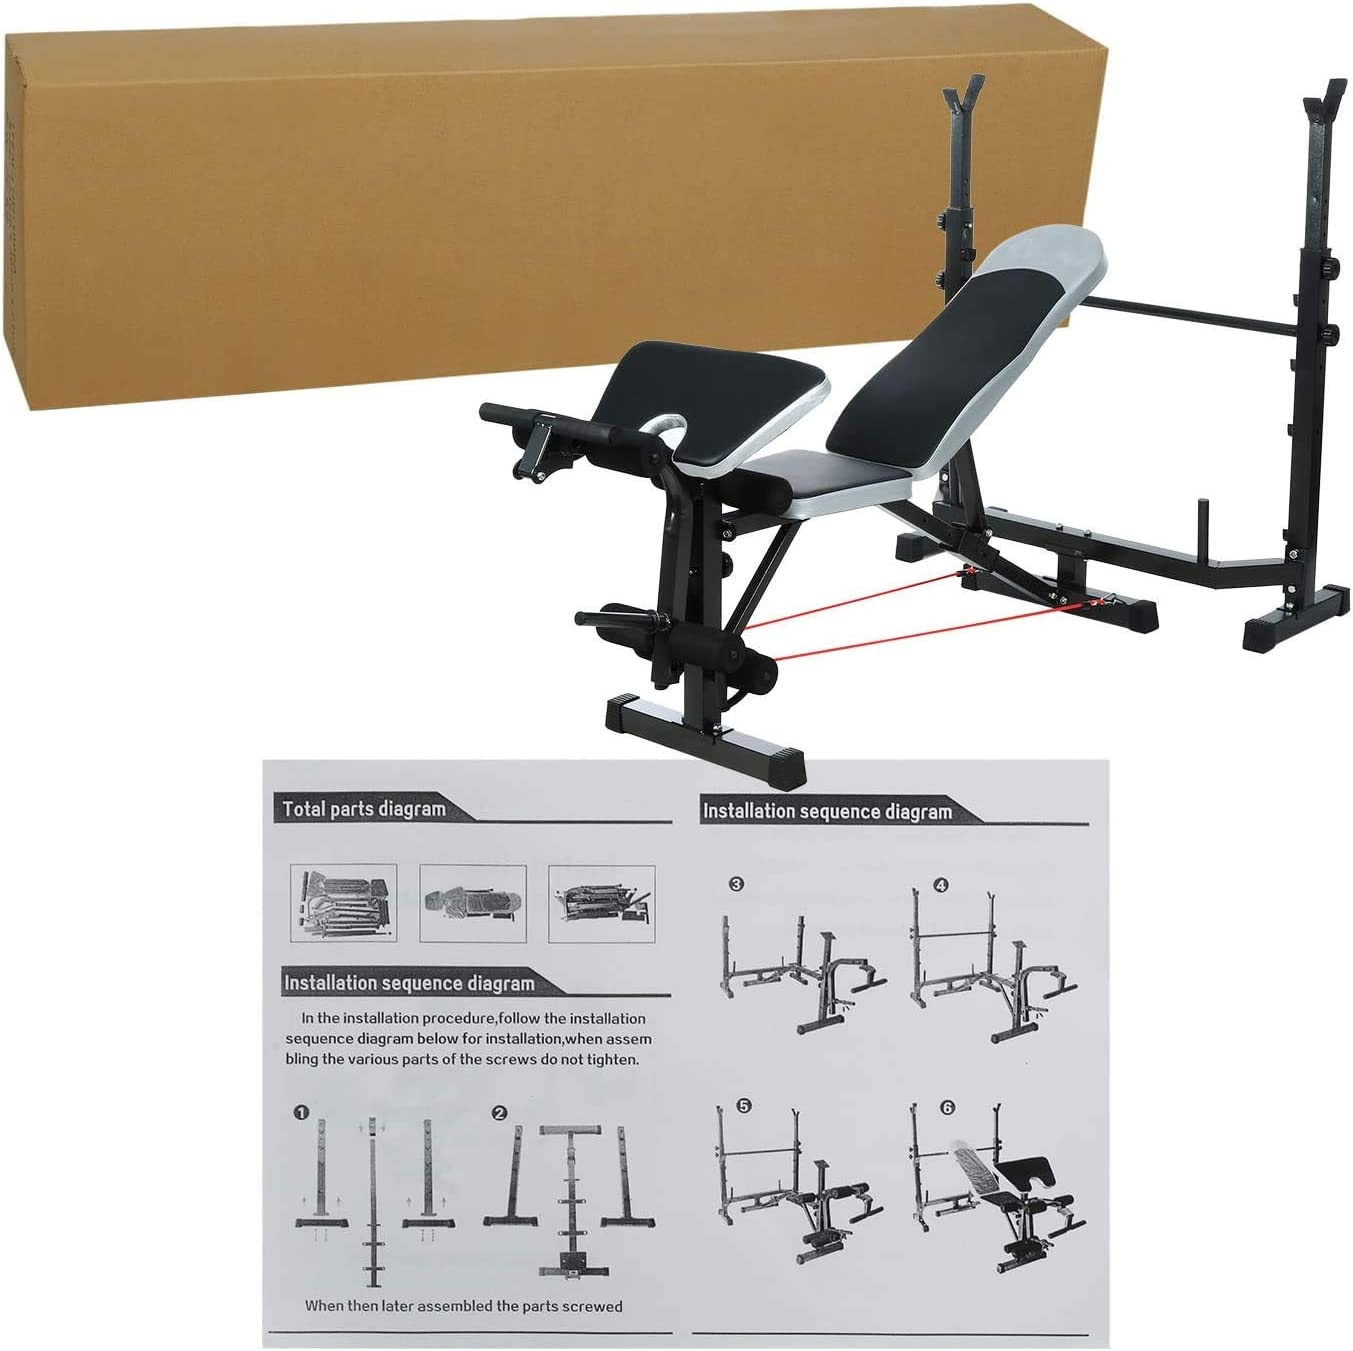 Olympic Weight Bench for Full Body Workout Exercise 6 Levels Adjustable Professional Weight Bench Set for Indoor Gym Home Fitness Exercise Multifunctional Foldable Lifting Flat